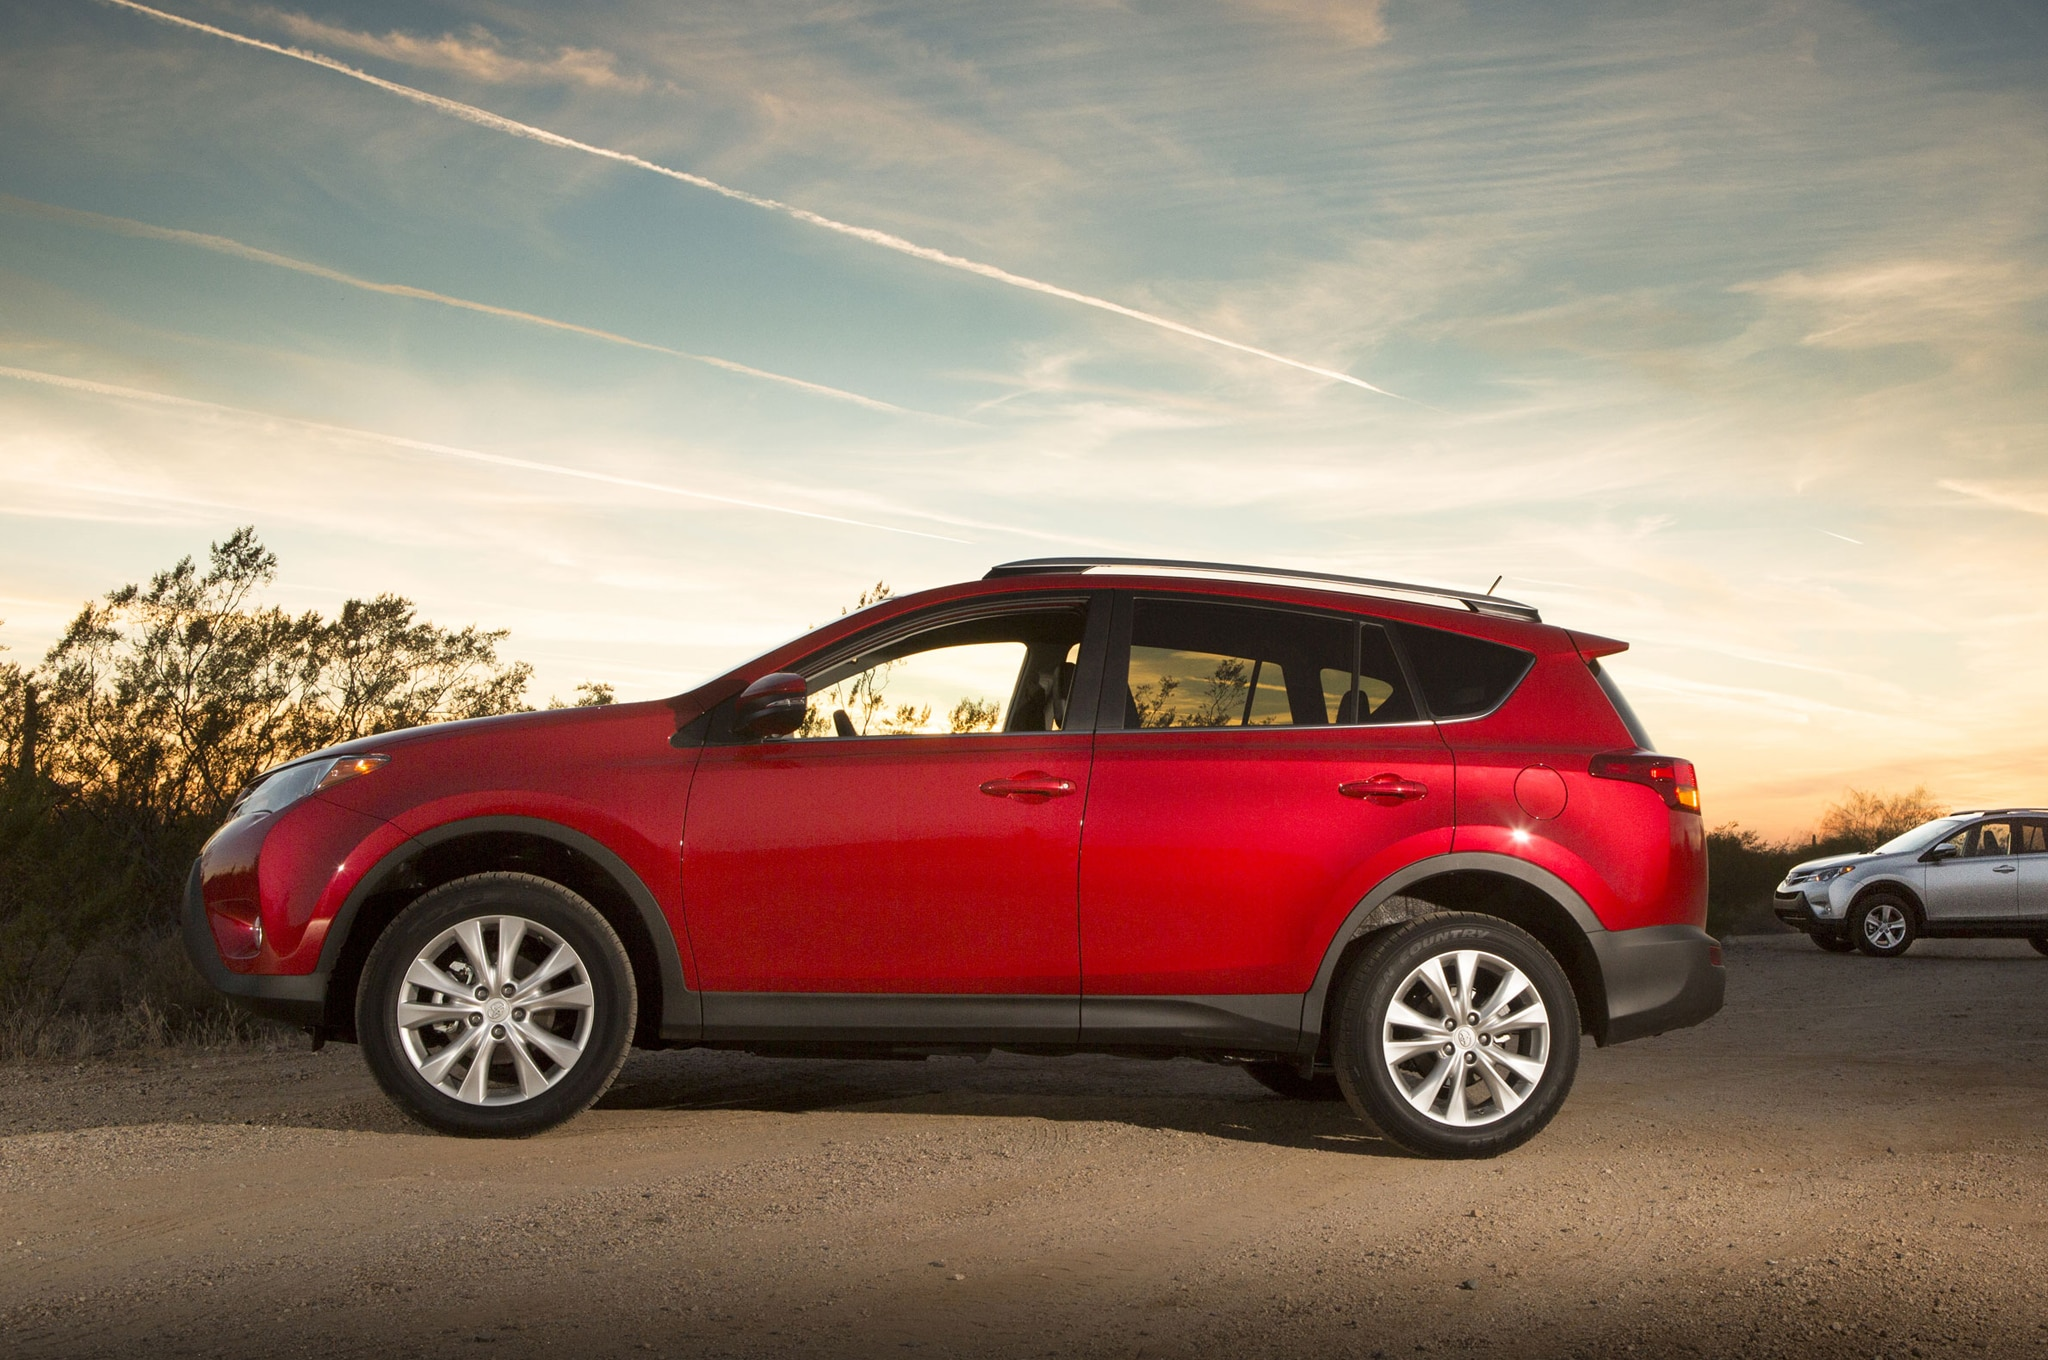 Honda Cr V Leads January Cuv Sales Rav4 Nips At Escape S